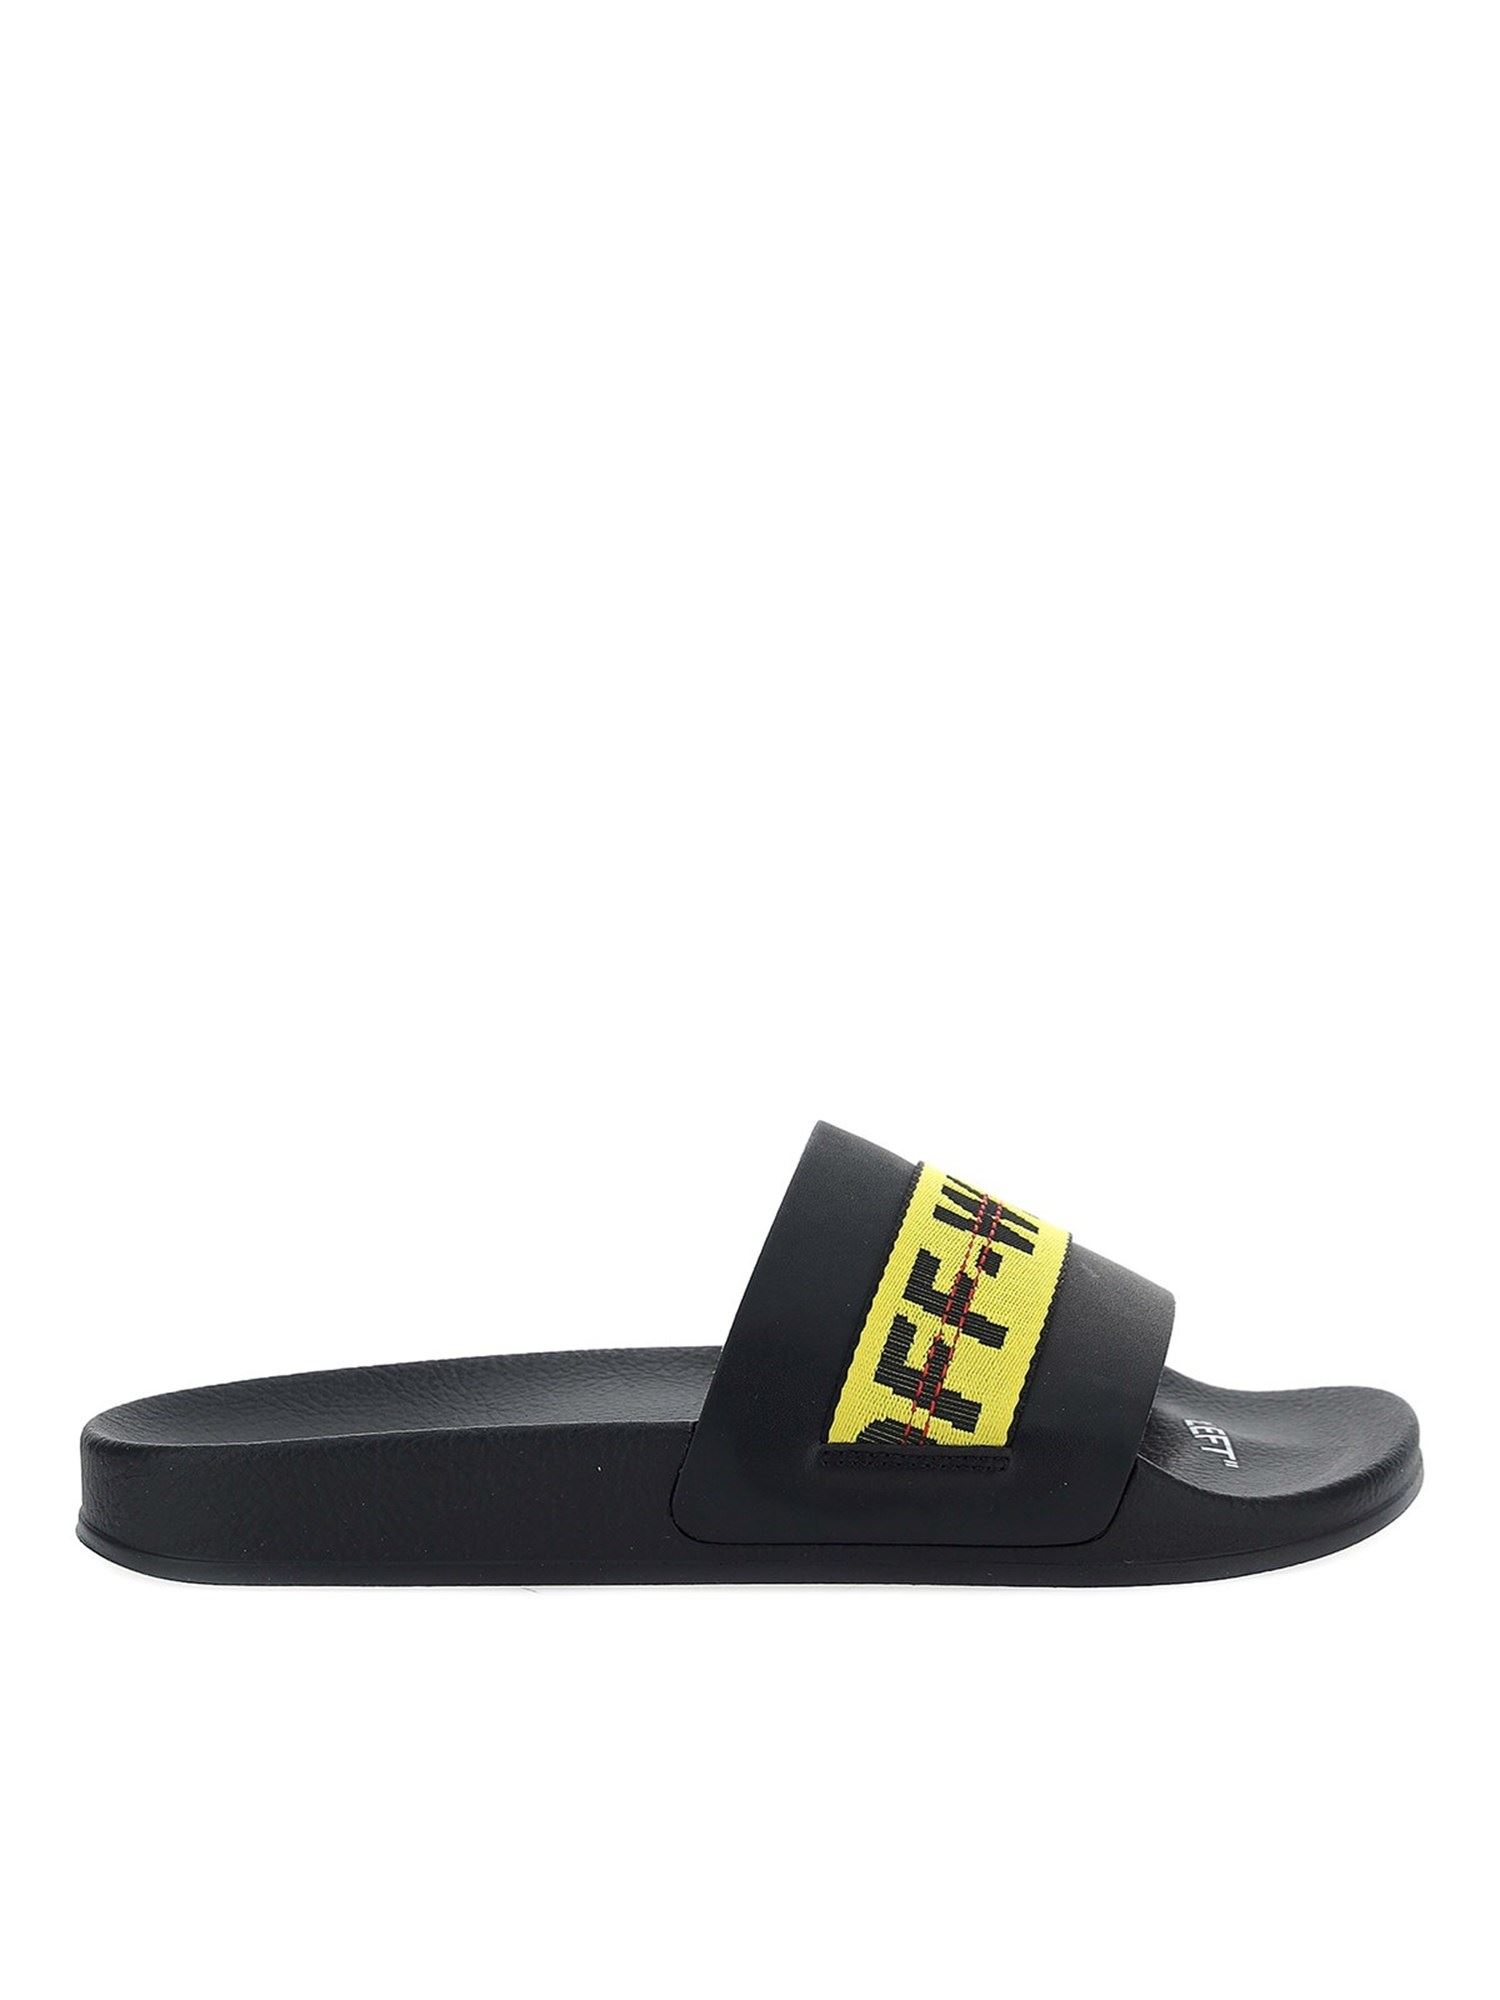 Off-White INDUSTRIAL LOGO SLIDERS IN BLACK